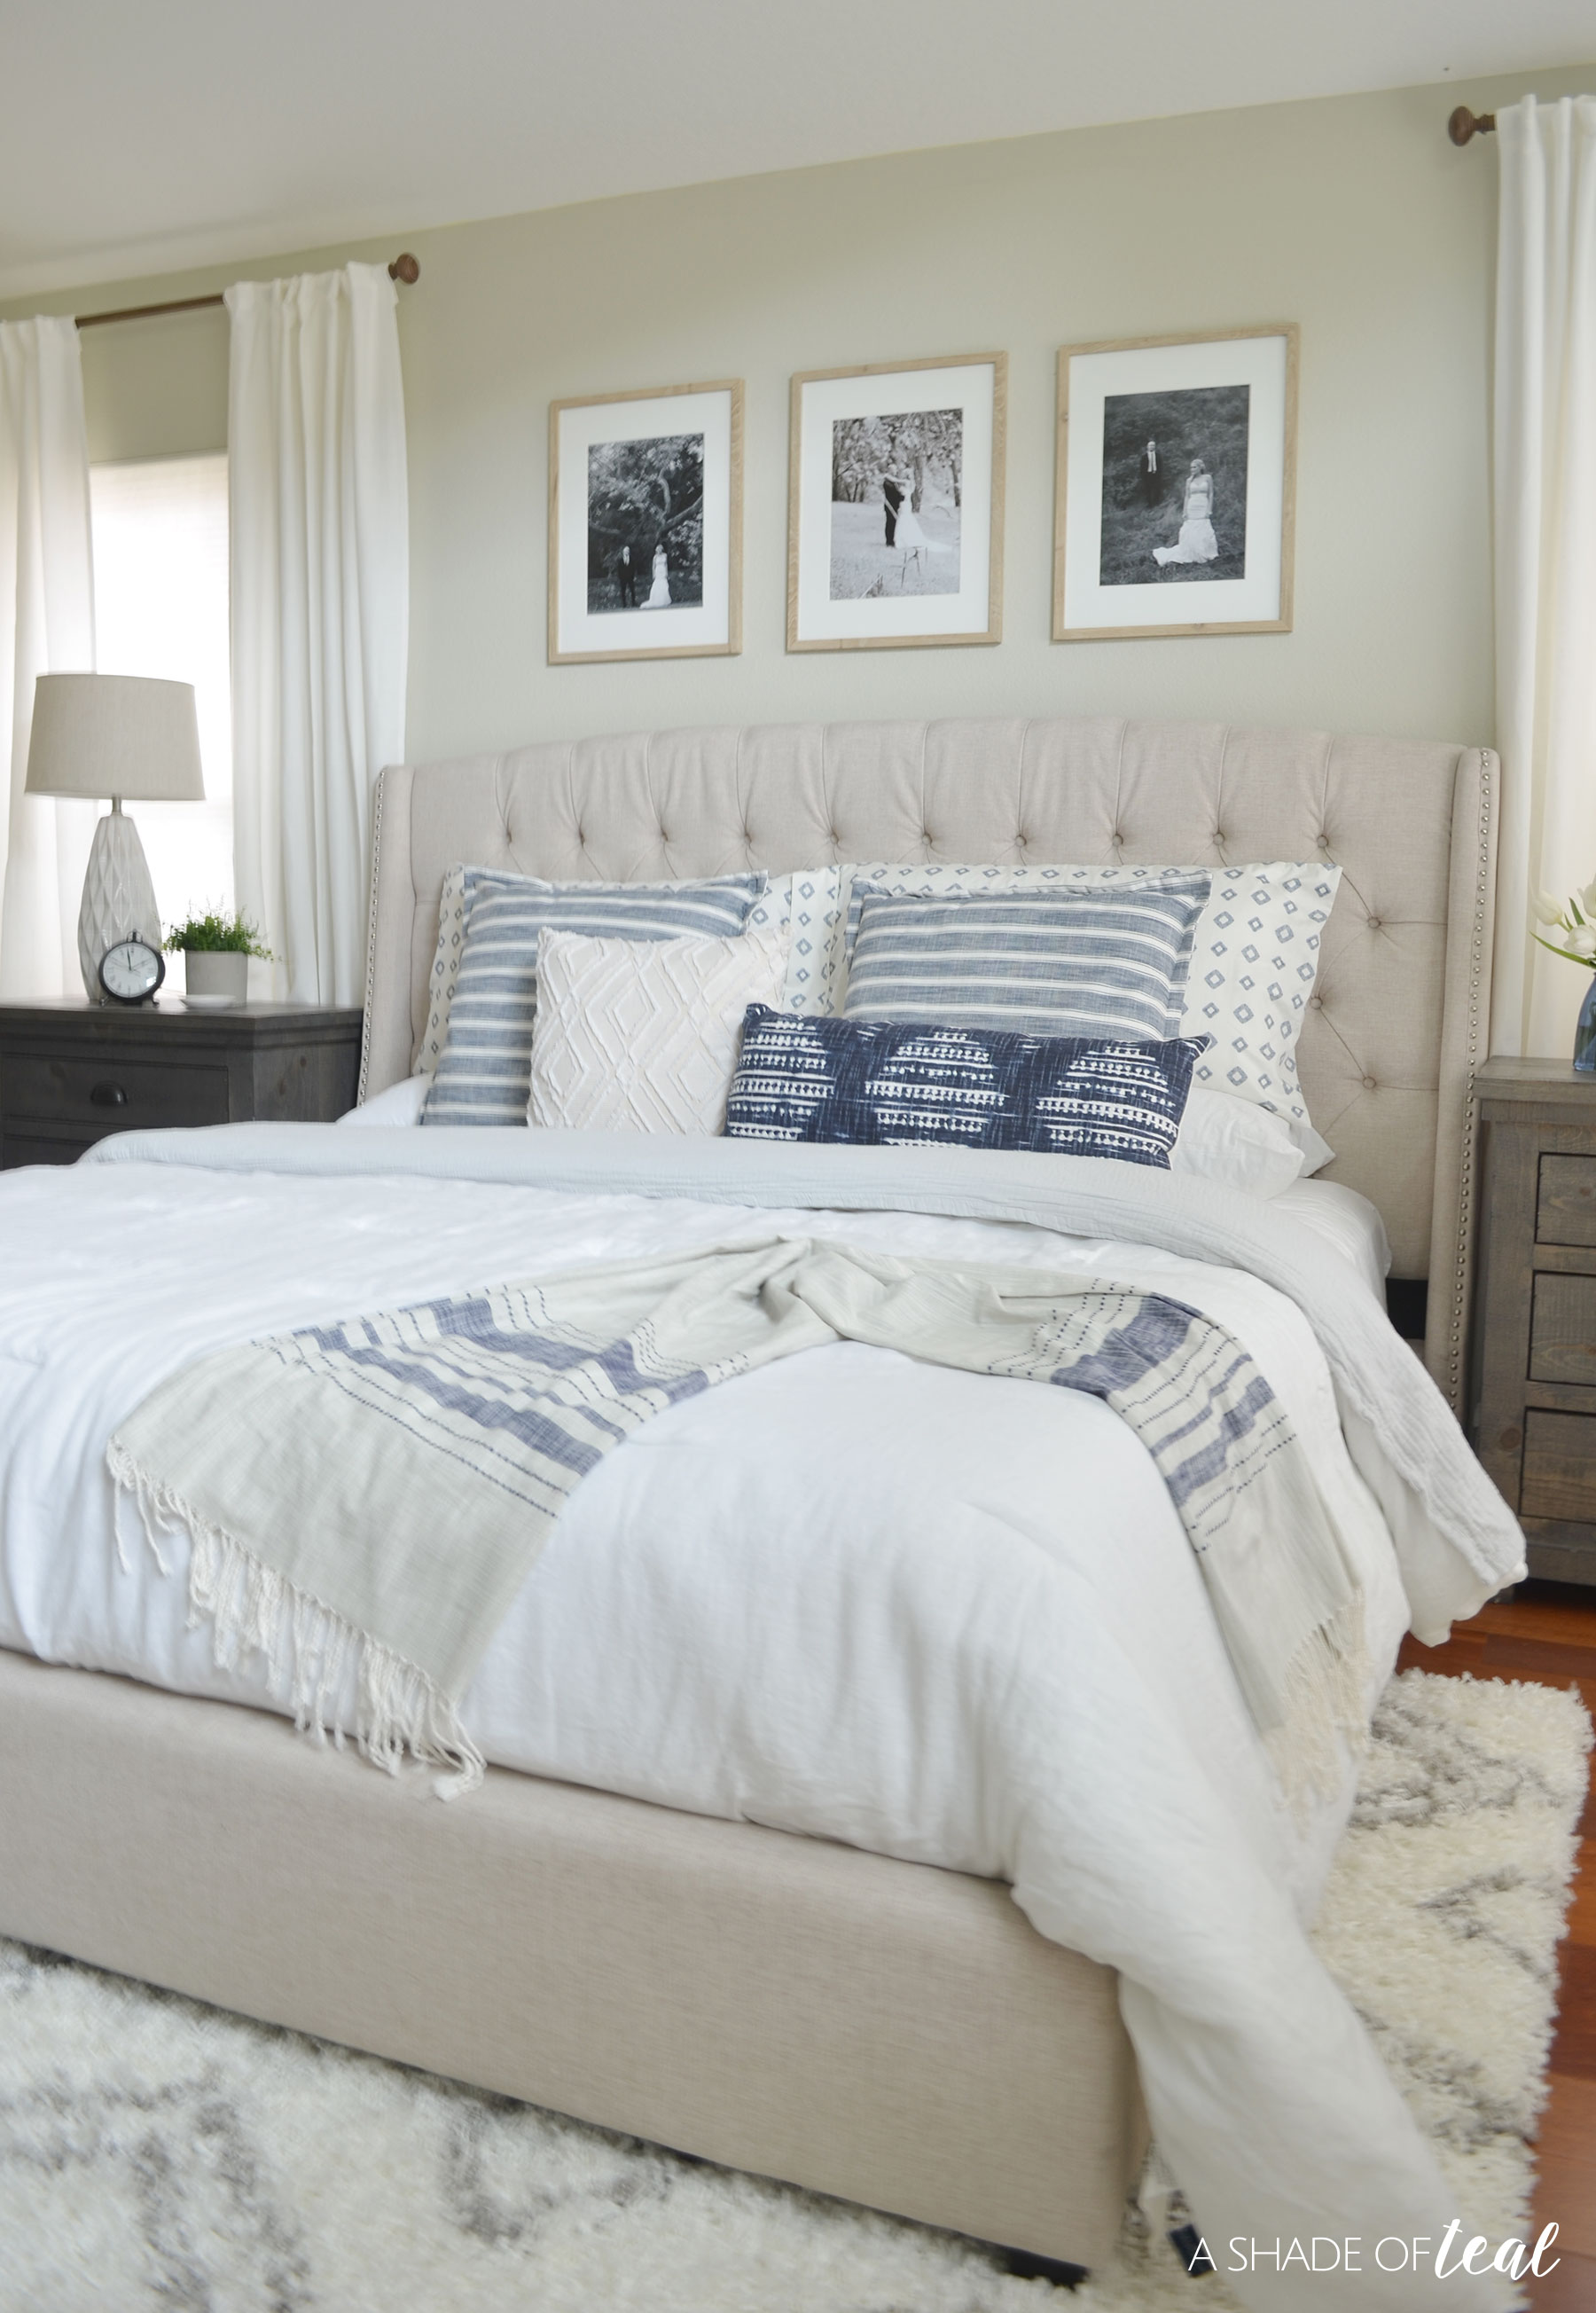 Rustic Master Bedroom: Rustic Chic Master Bedroom // ORC The Reveal